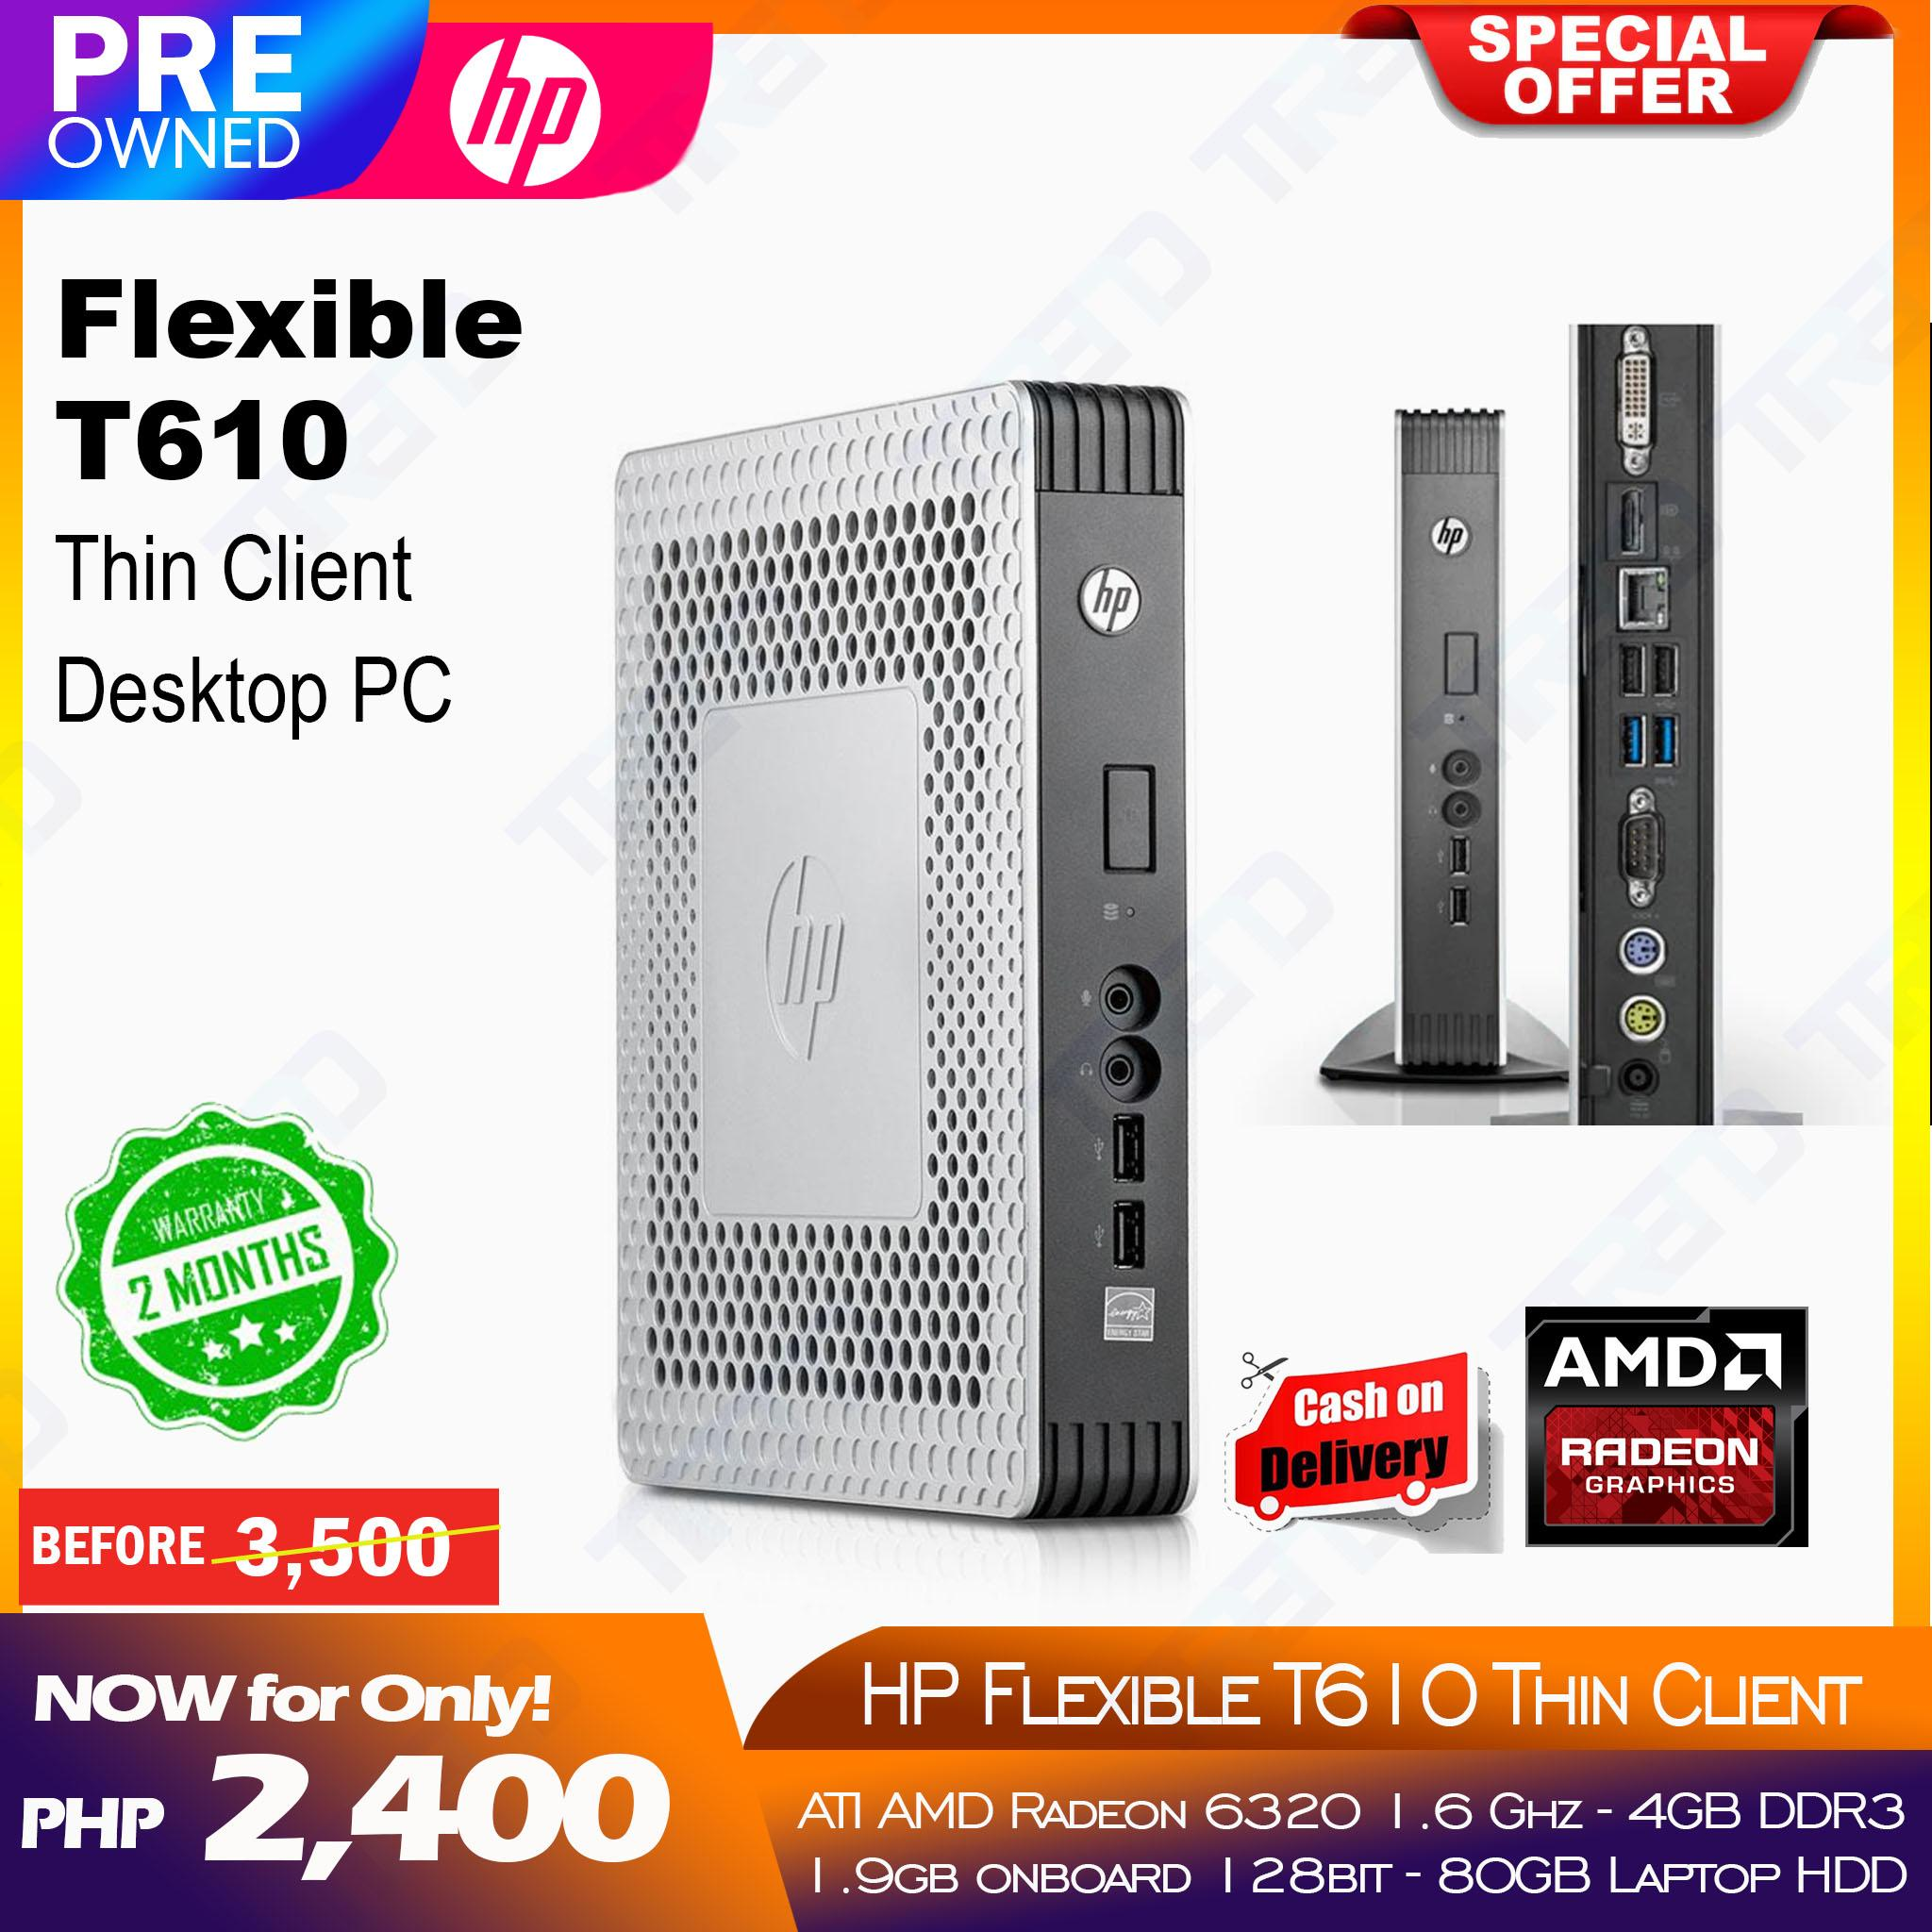 HP Flexible T610 Thin Client Desktop PC